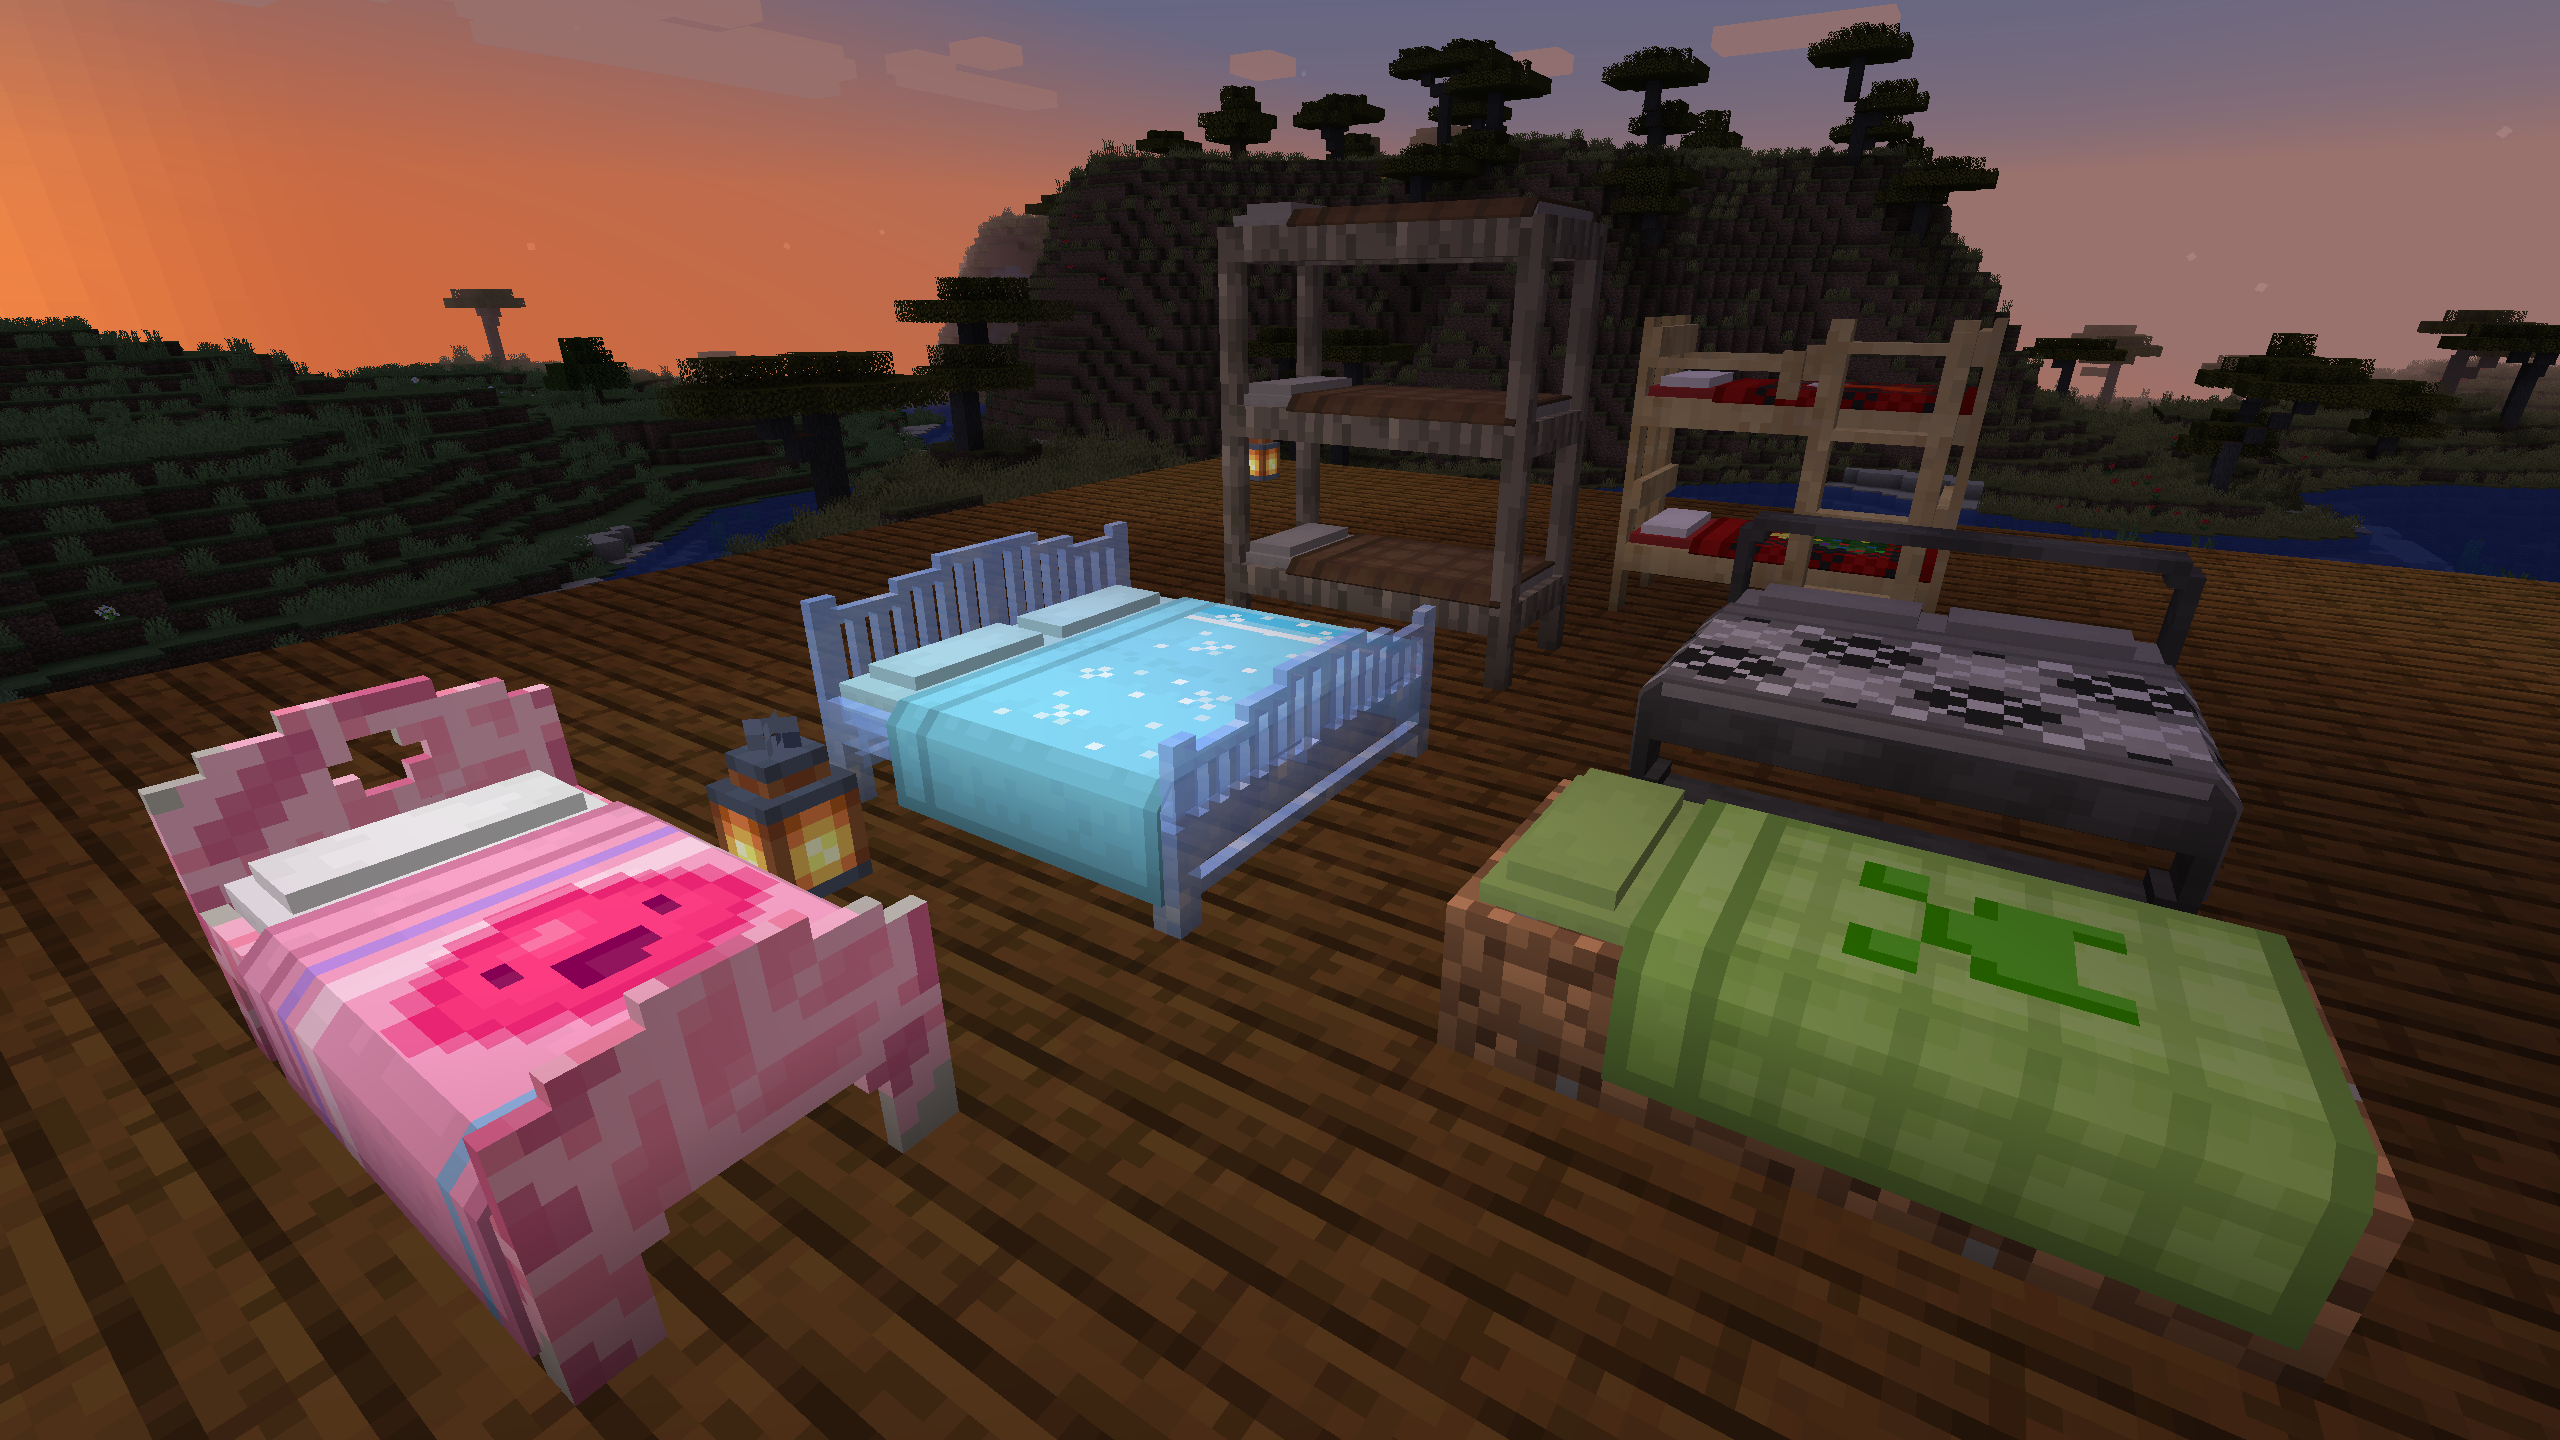 Multibeds Mods Minecraft Curseforge,Bedding Ideas For Master Bedroom